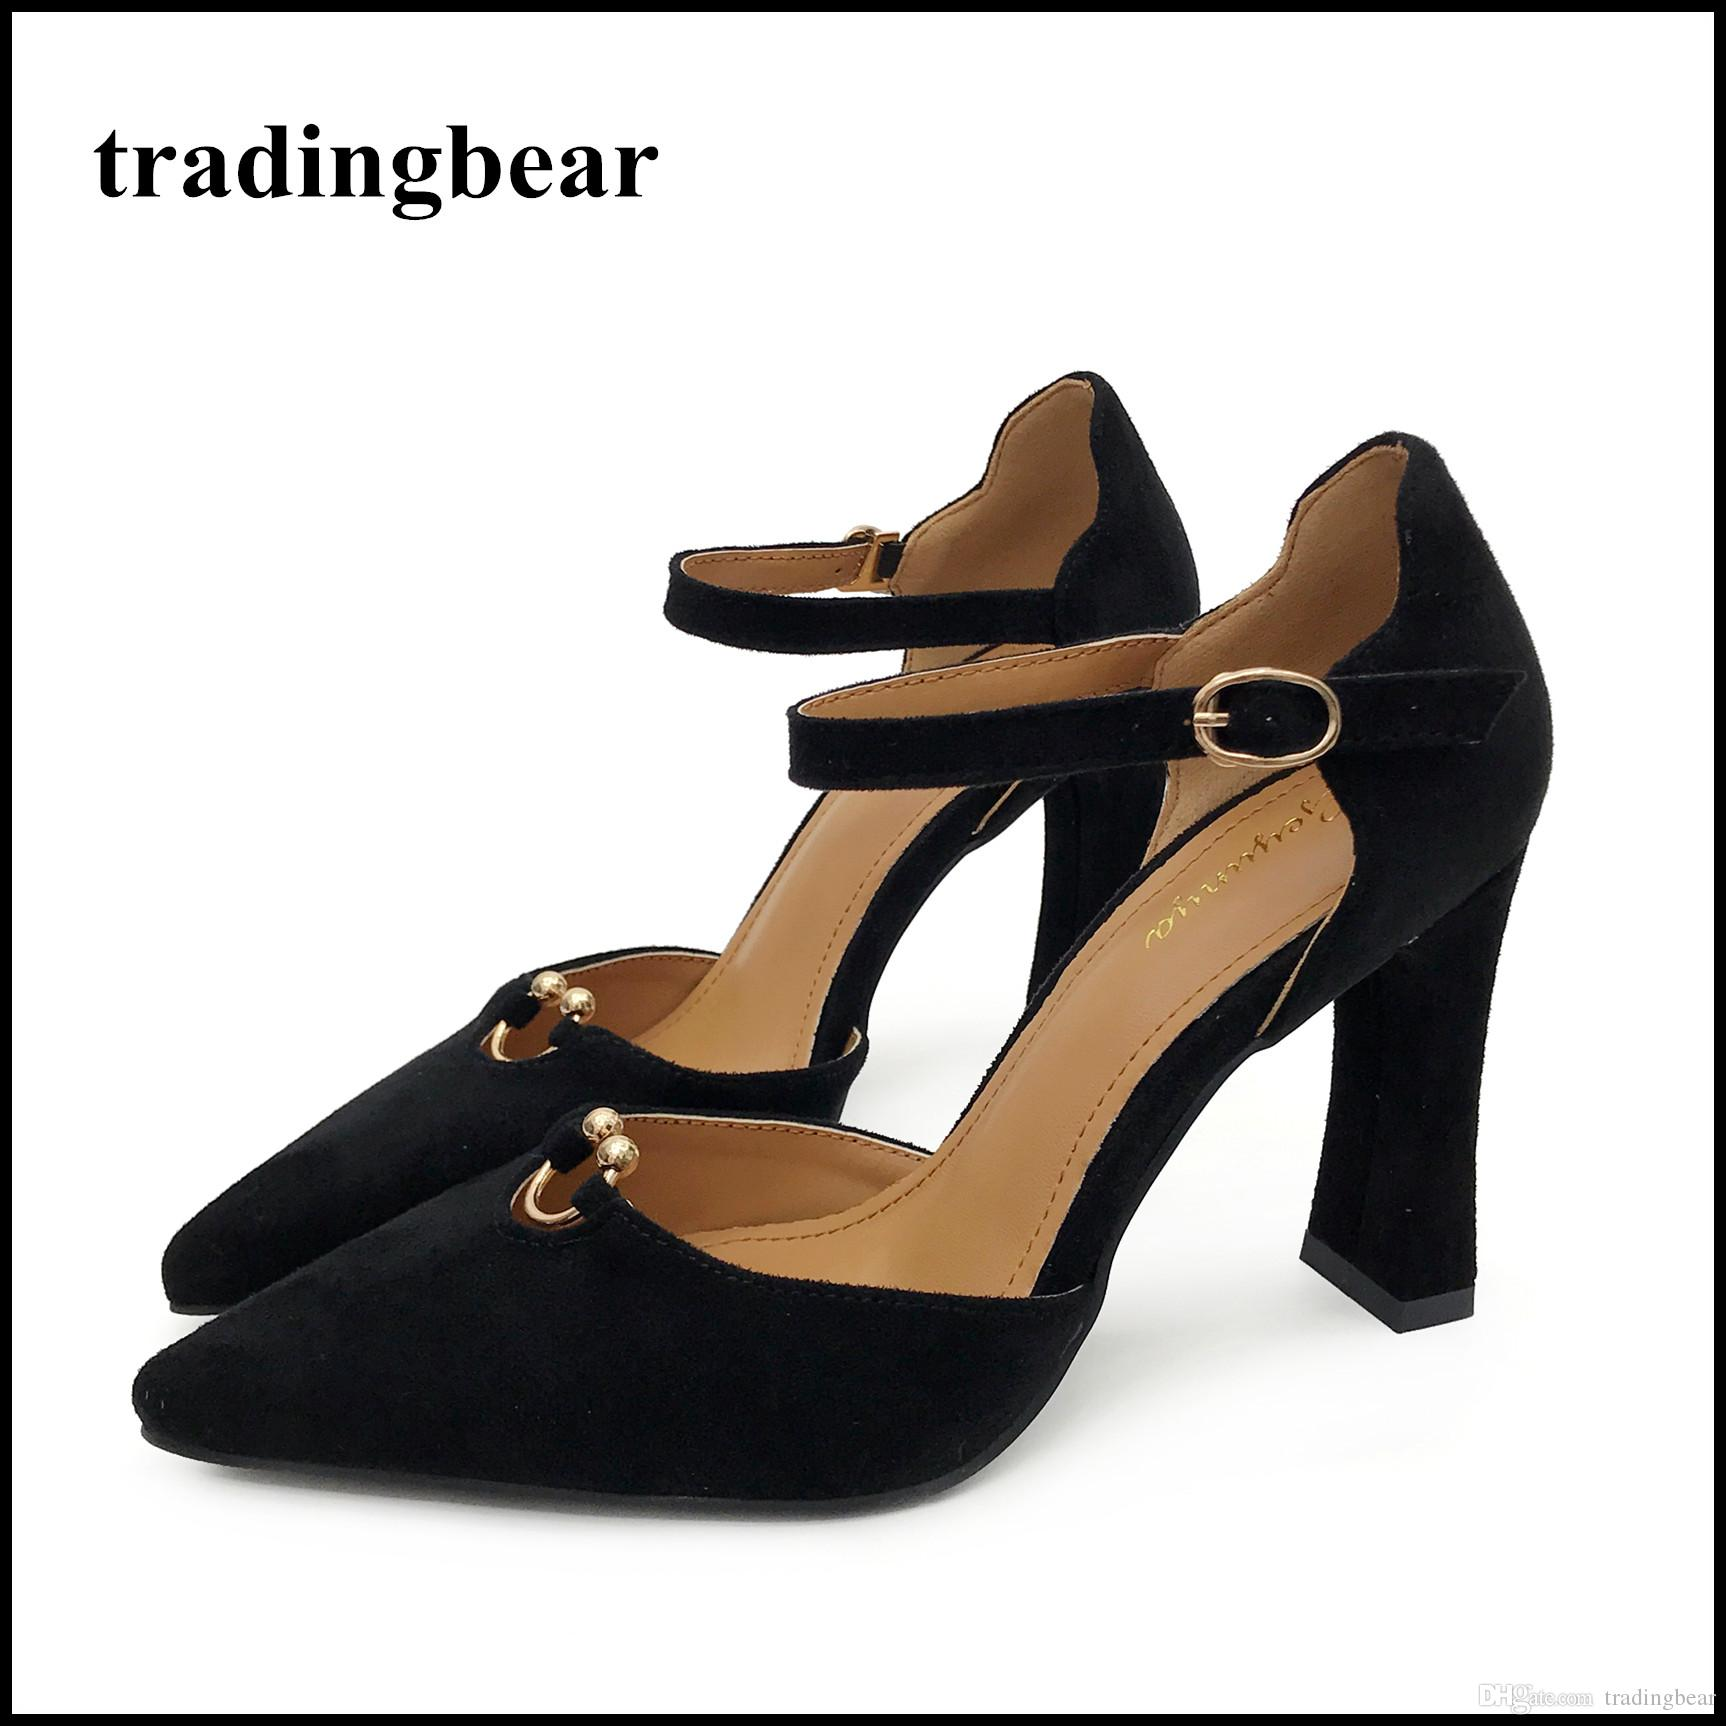 Black Beige Ankle Strap Pointed Toe High Heels Pumps Women Office Shoes  Synthetic Suede Size 35 To 40 Cheap Shoes For Men Italian Shoes From  Tradingbear